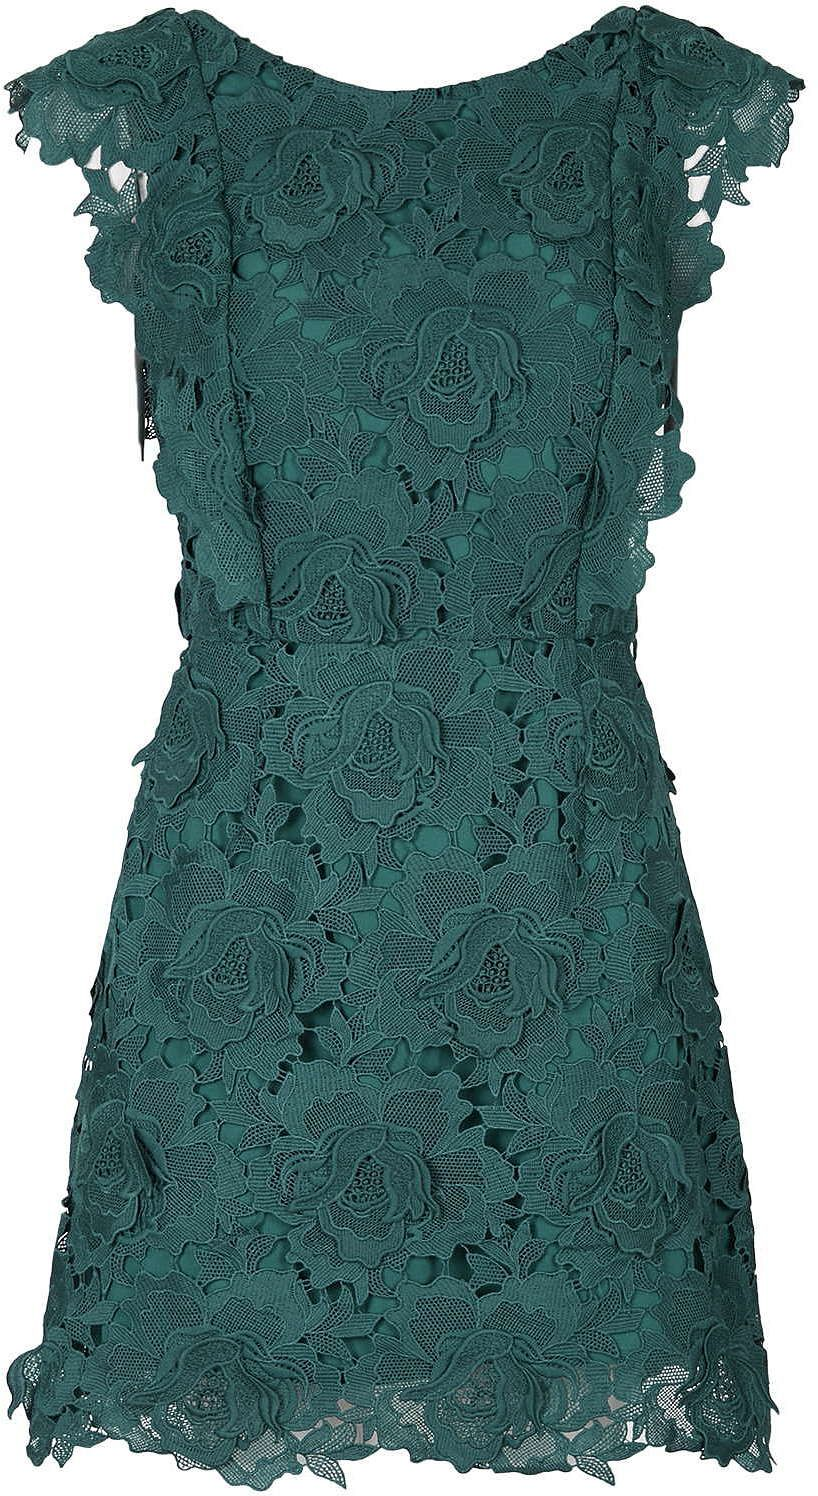 Bottle green lace for the colour! | Bridesmaid dress inspiration ...